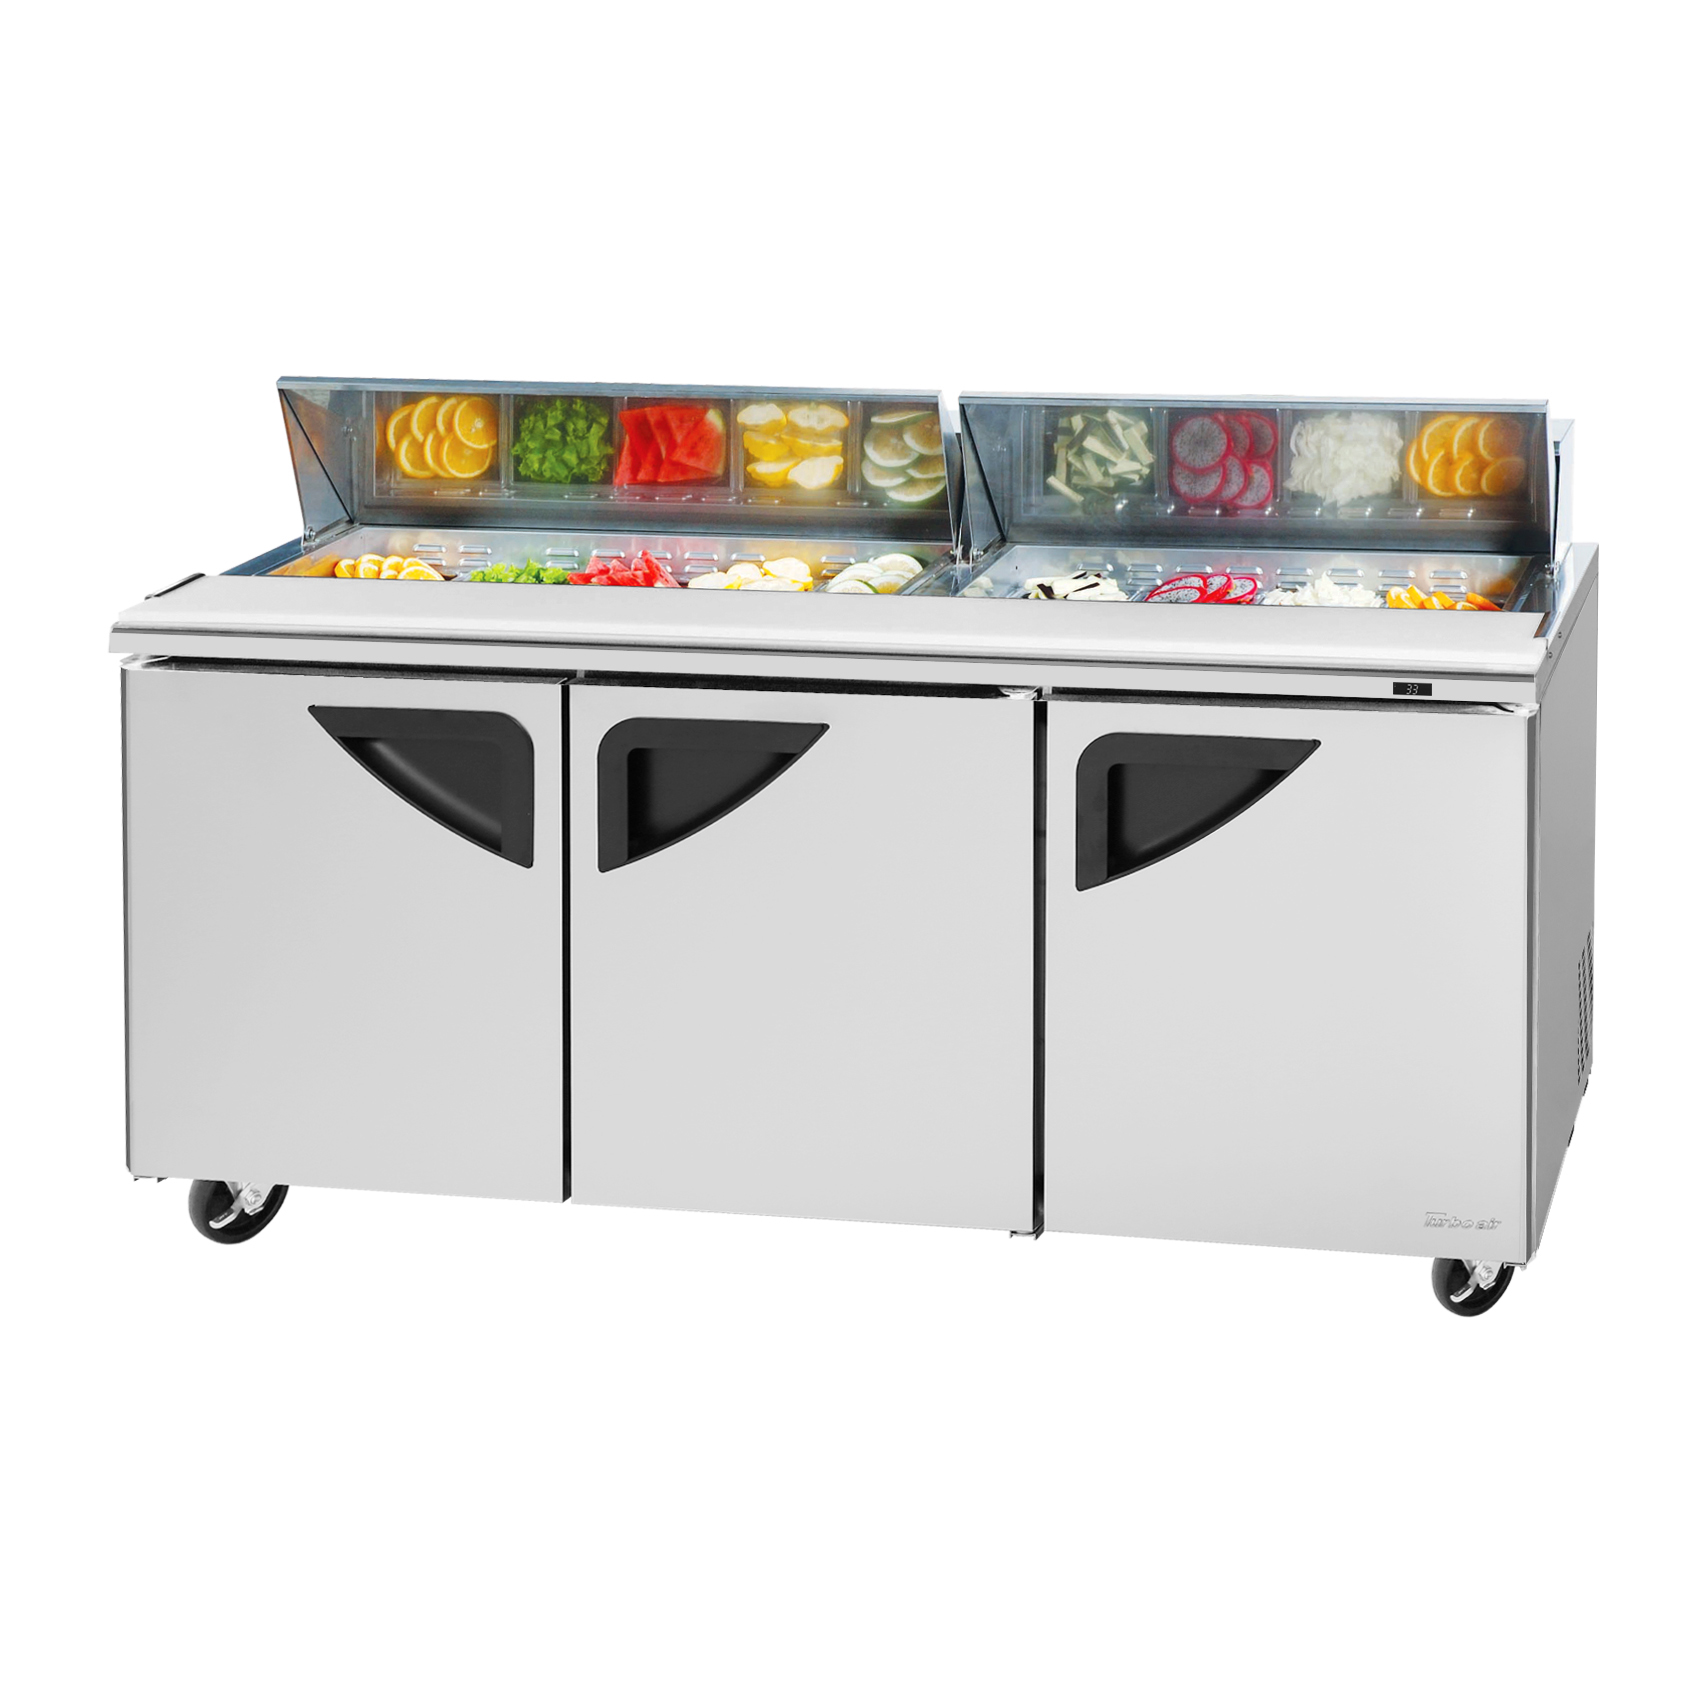 Turbo Air TST-72SD-N refrigerated counter, sandwich / salad unit